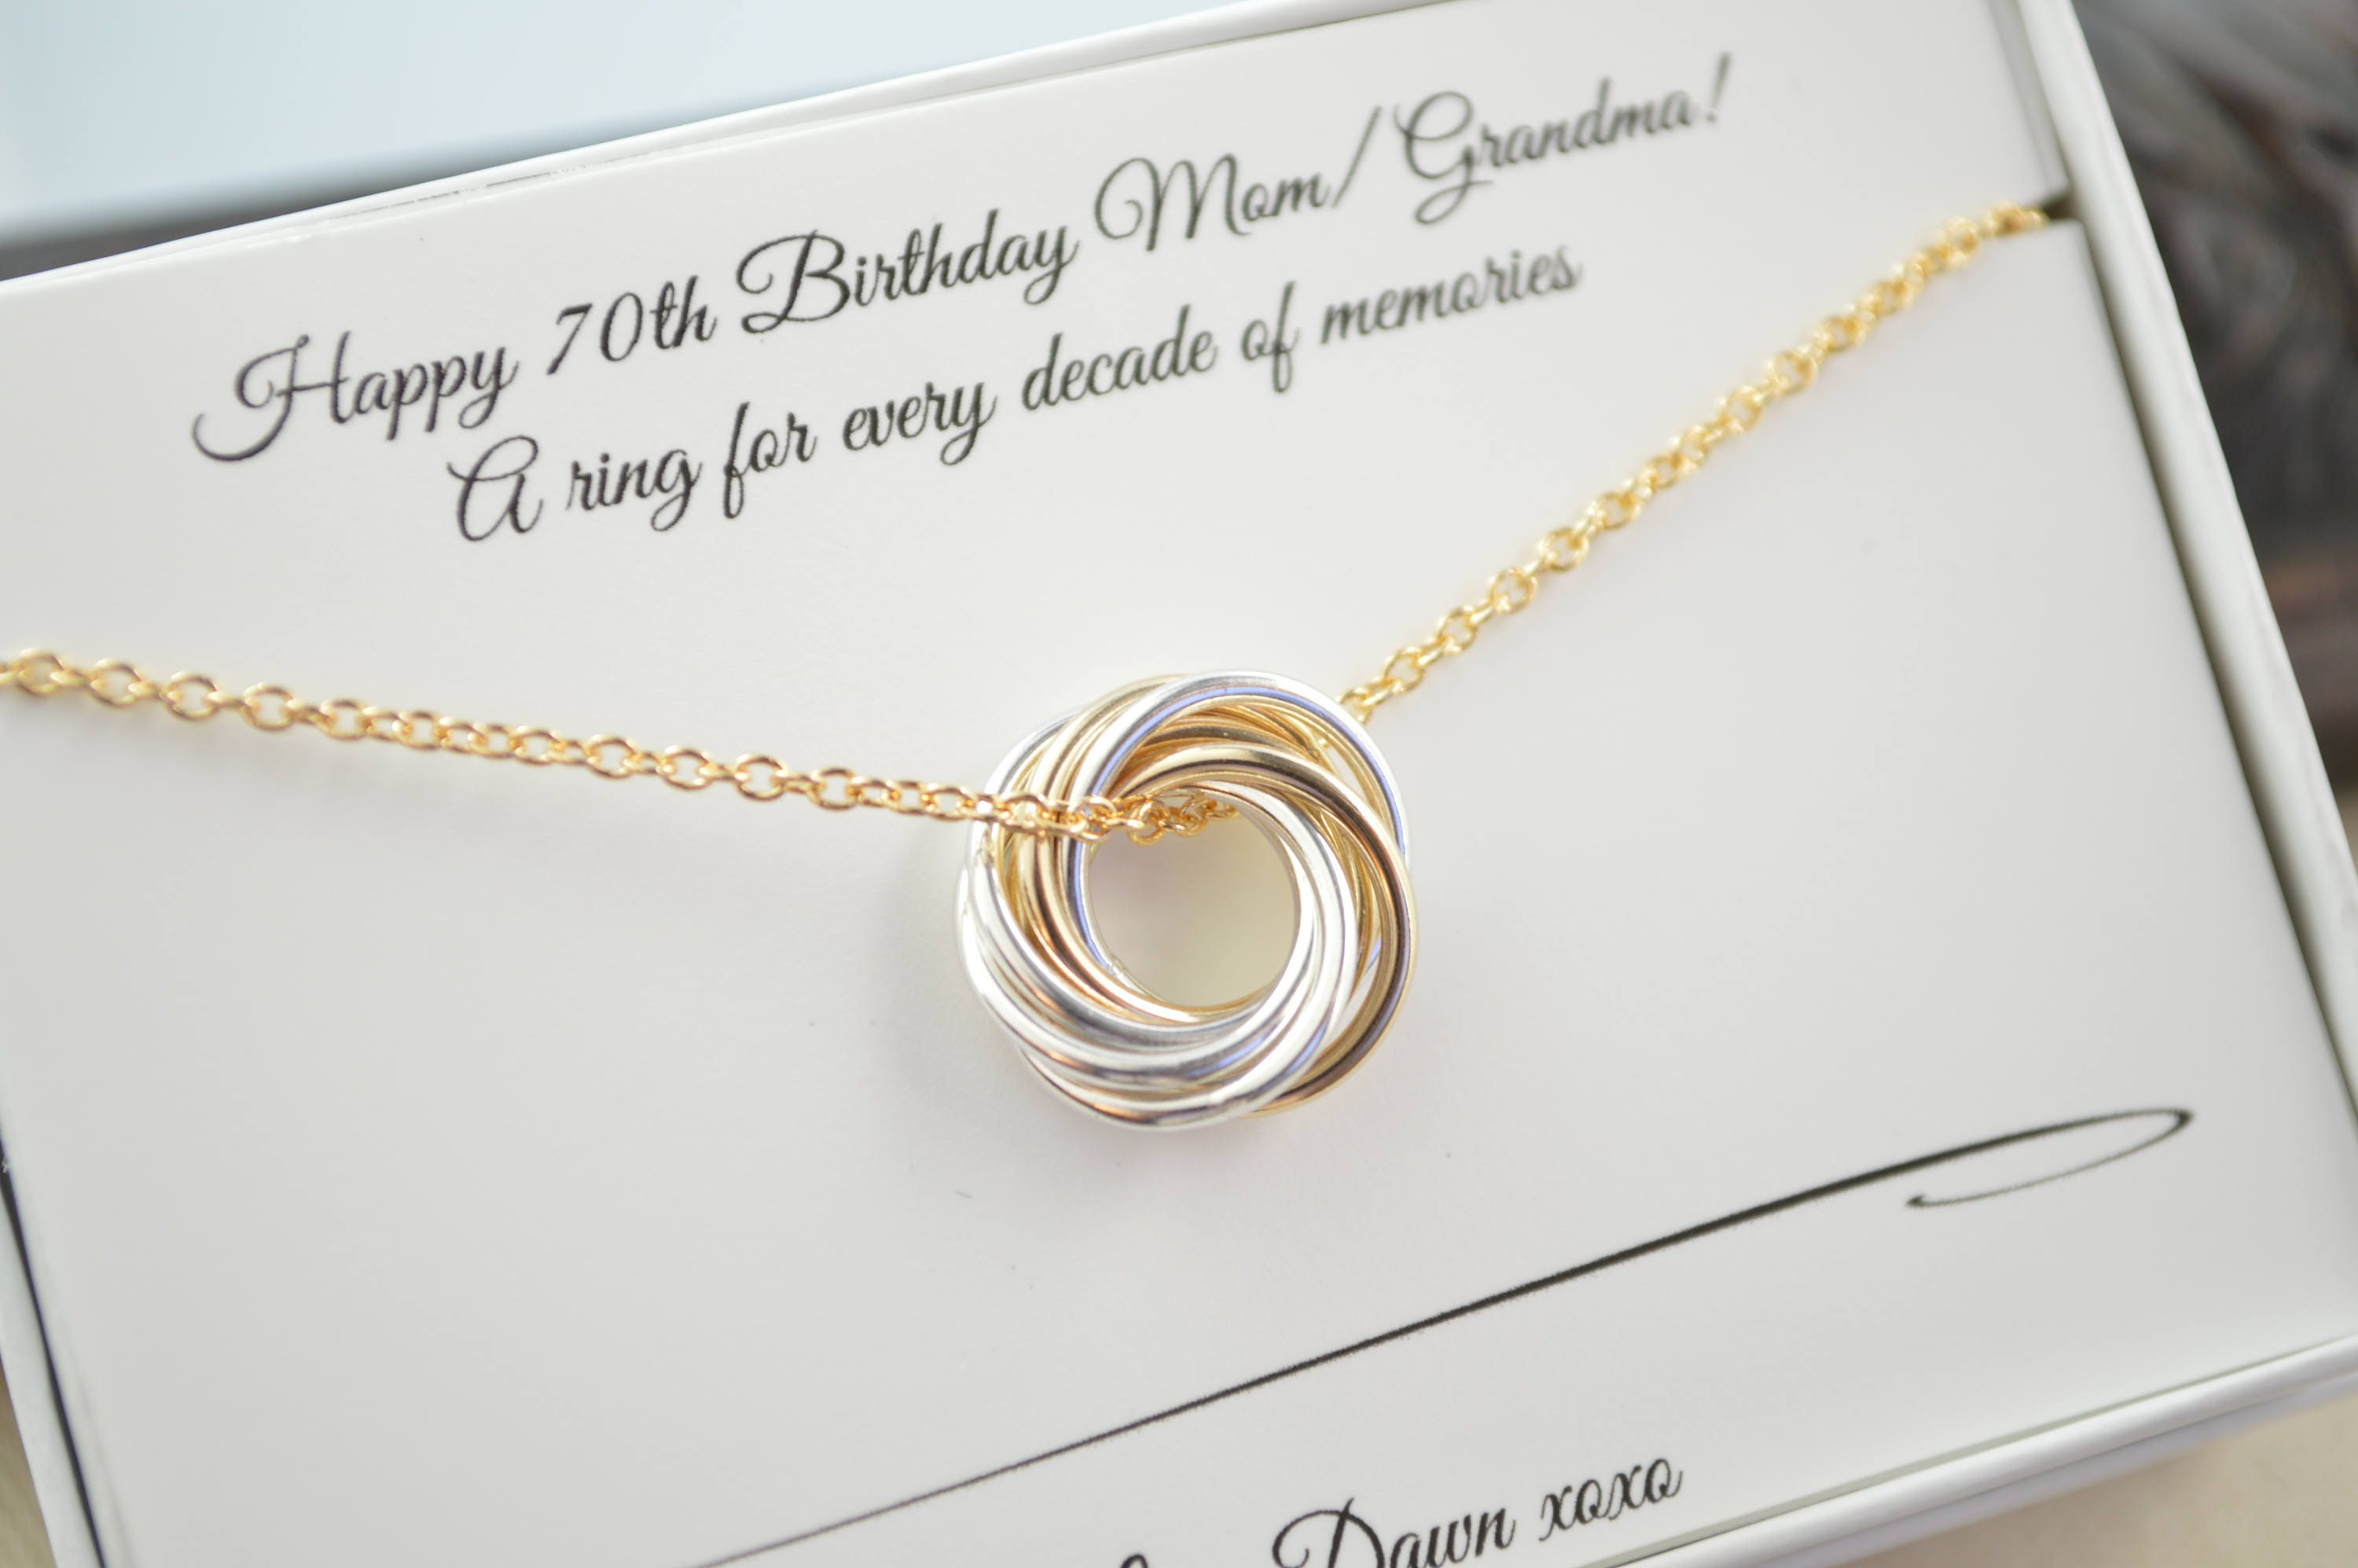 Petite Necklace 70th Birthday Gif For Grandma And Mom Mixed Metals